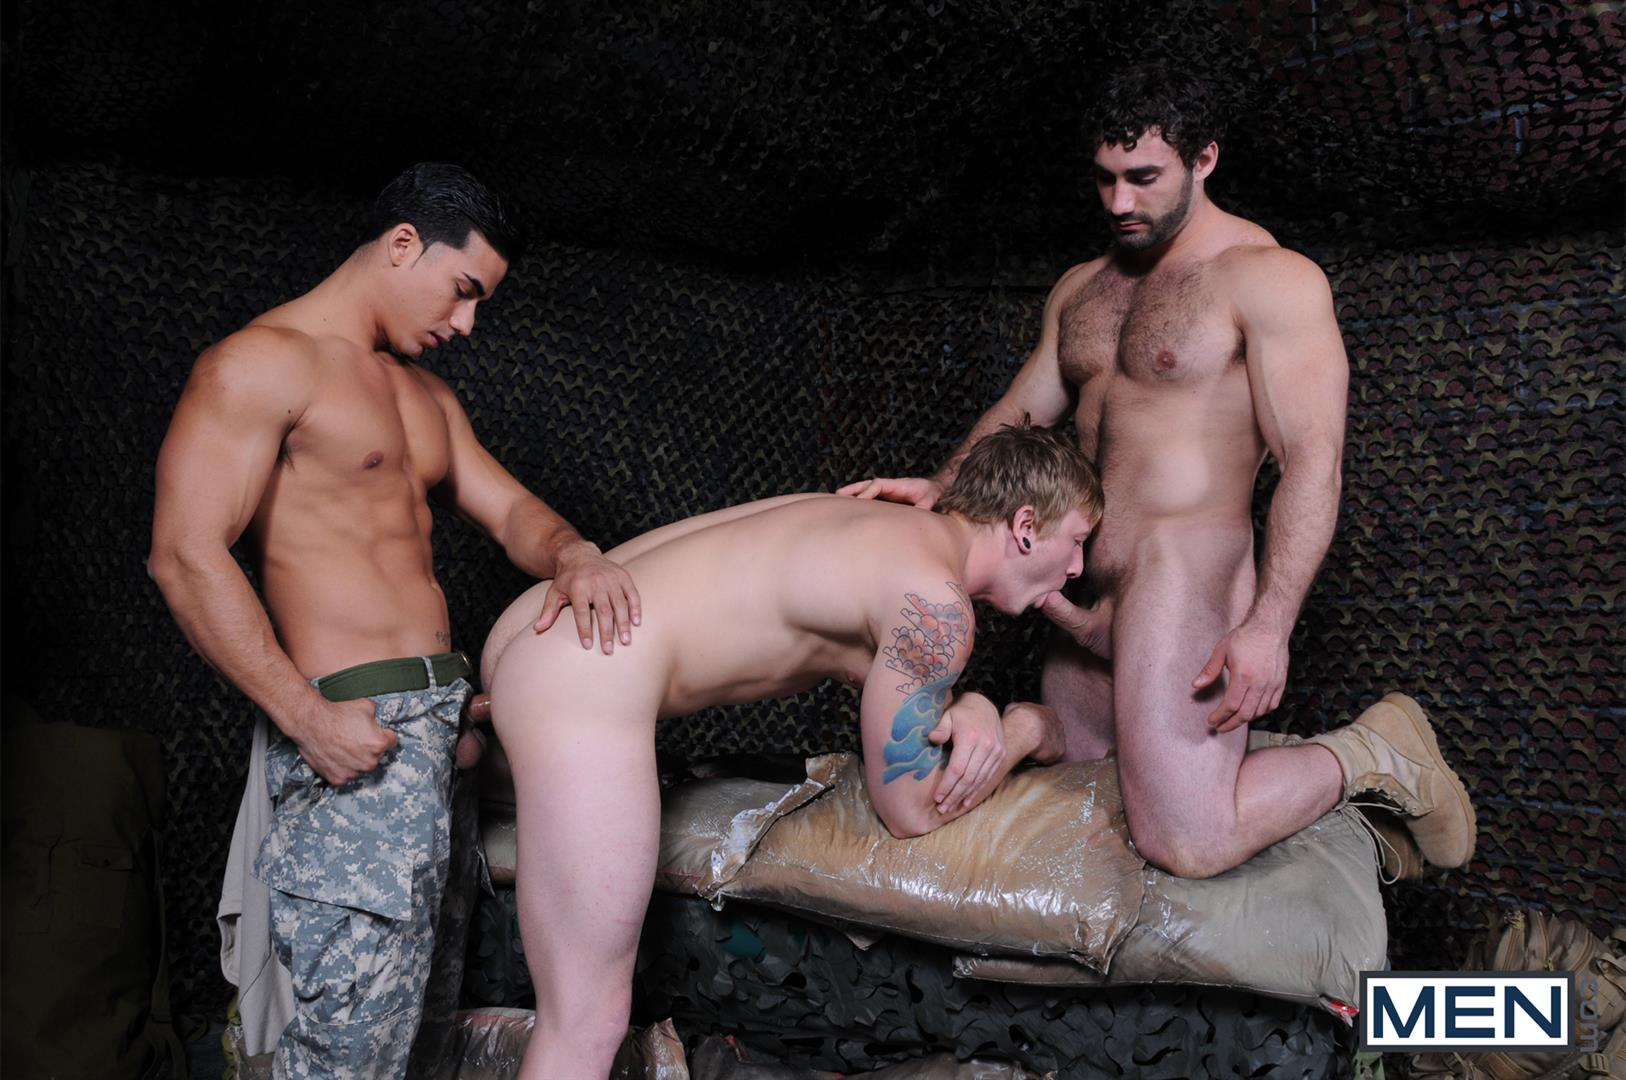 Men-Tour-of-Duty-Jaxton-Wheeler-and-Tom-Faulk-and-Topher-Di-Maggio-Army-Guys-Fucking-Amateur-Gay-Porn-08 Tom Faulk Getting Fucked by Topher DiMaggio and Jaxton Wheeler